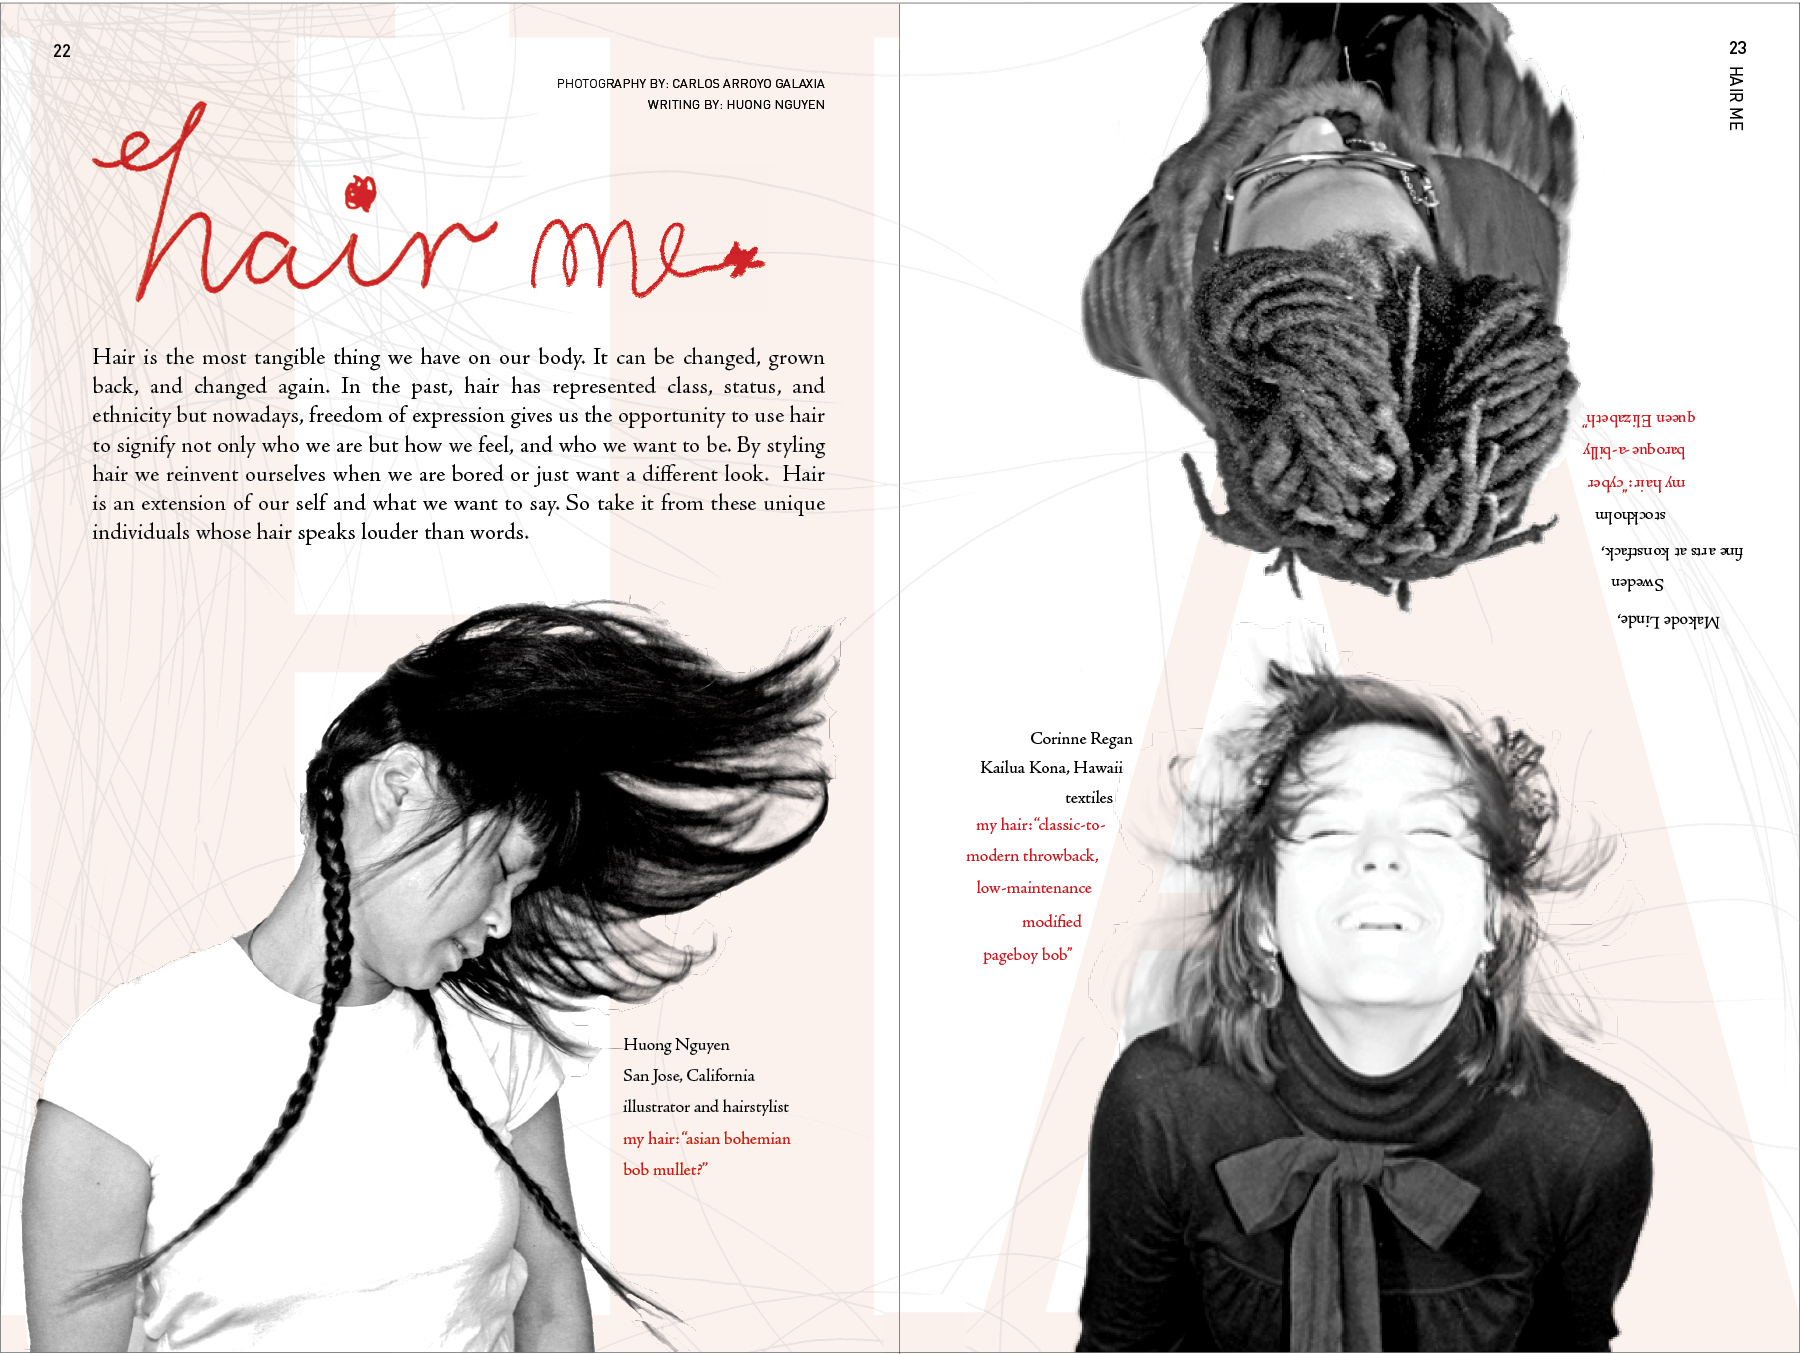 Photography  攝影 :   Carlos Arroyo Galaxia   |   Writing 文章: Huong Nguyen |  Design  設計: Rowena Chan